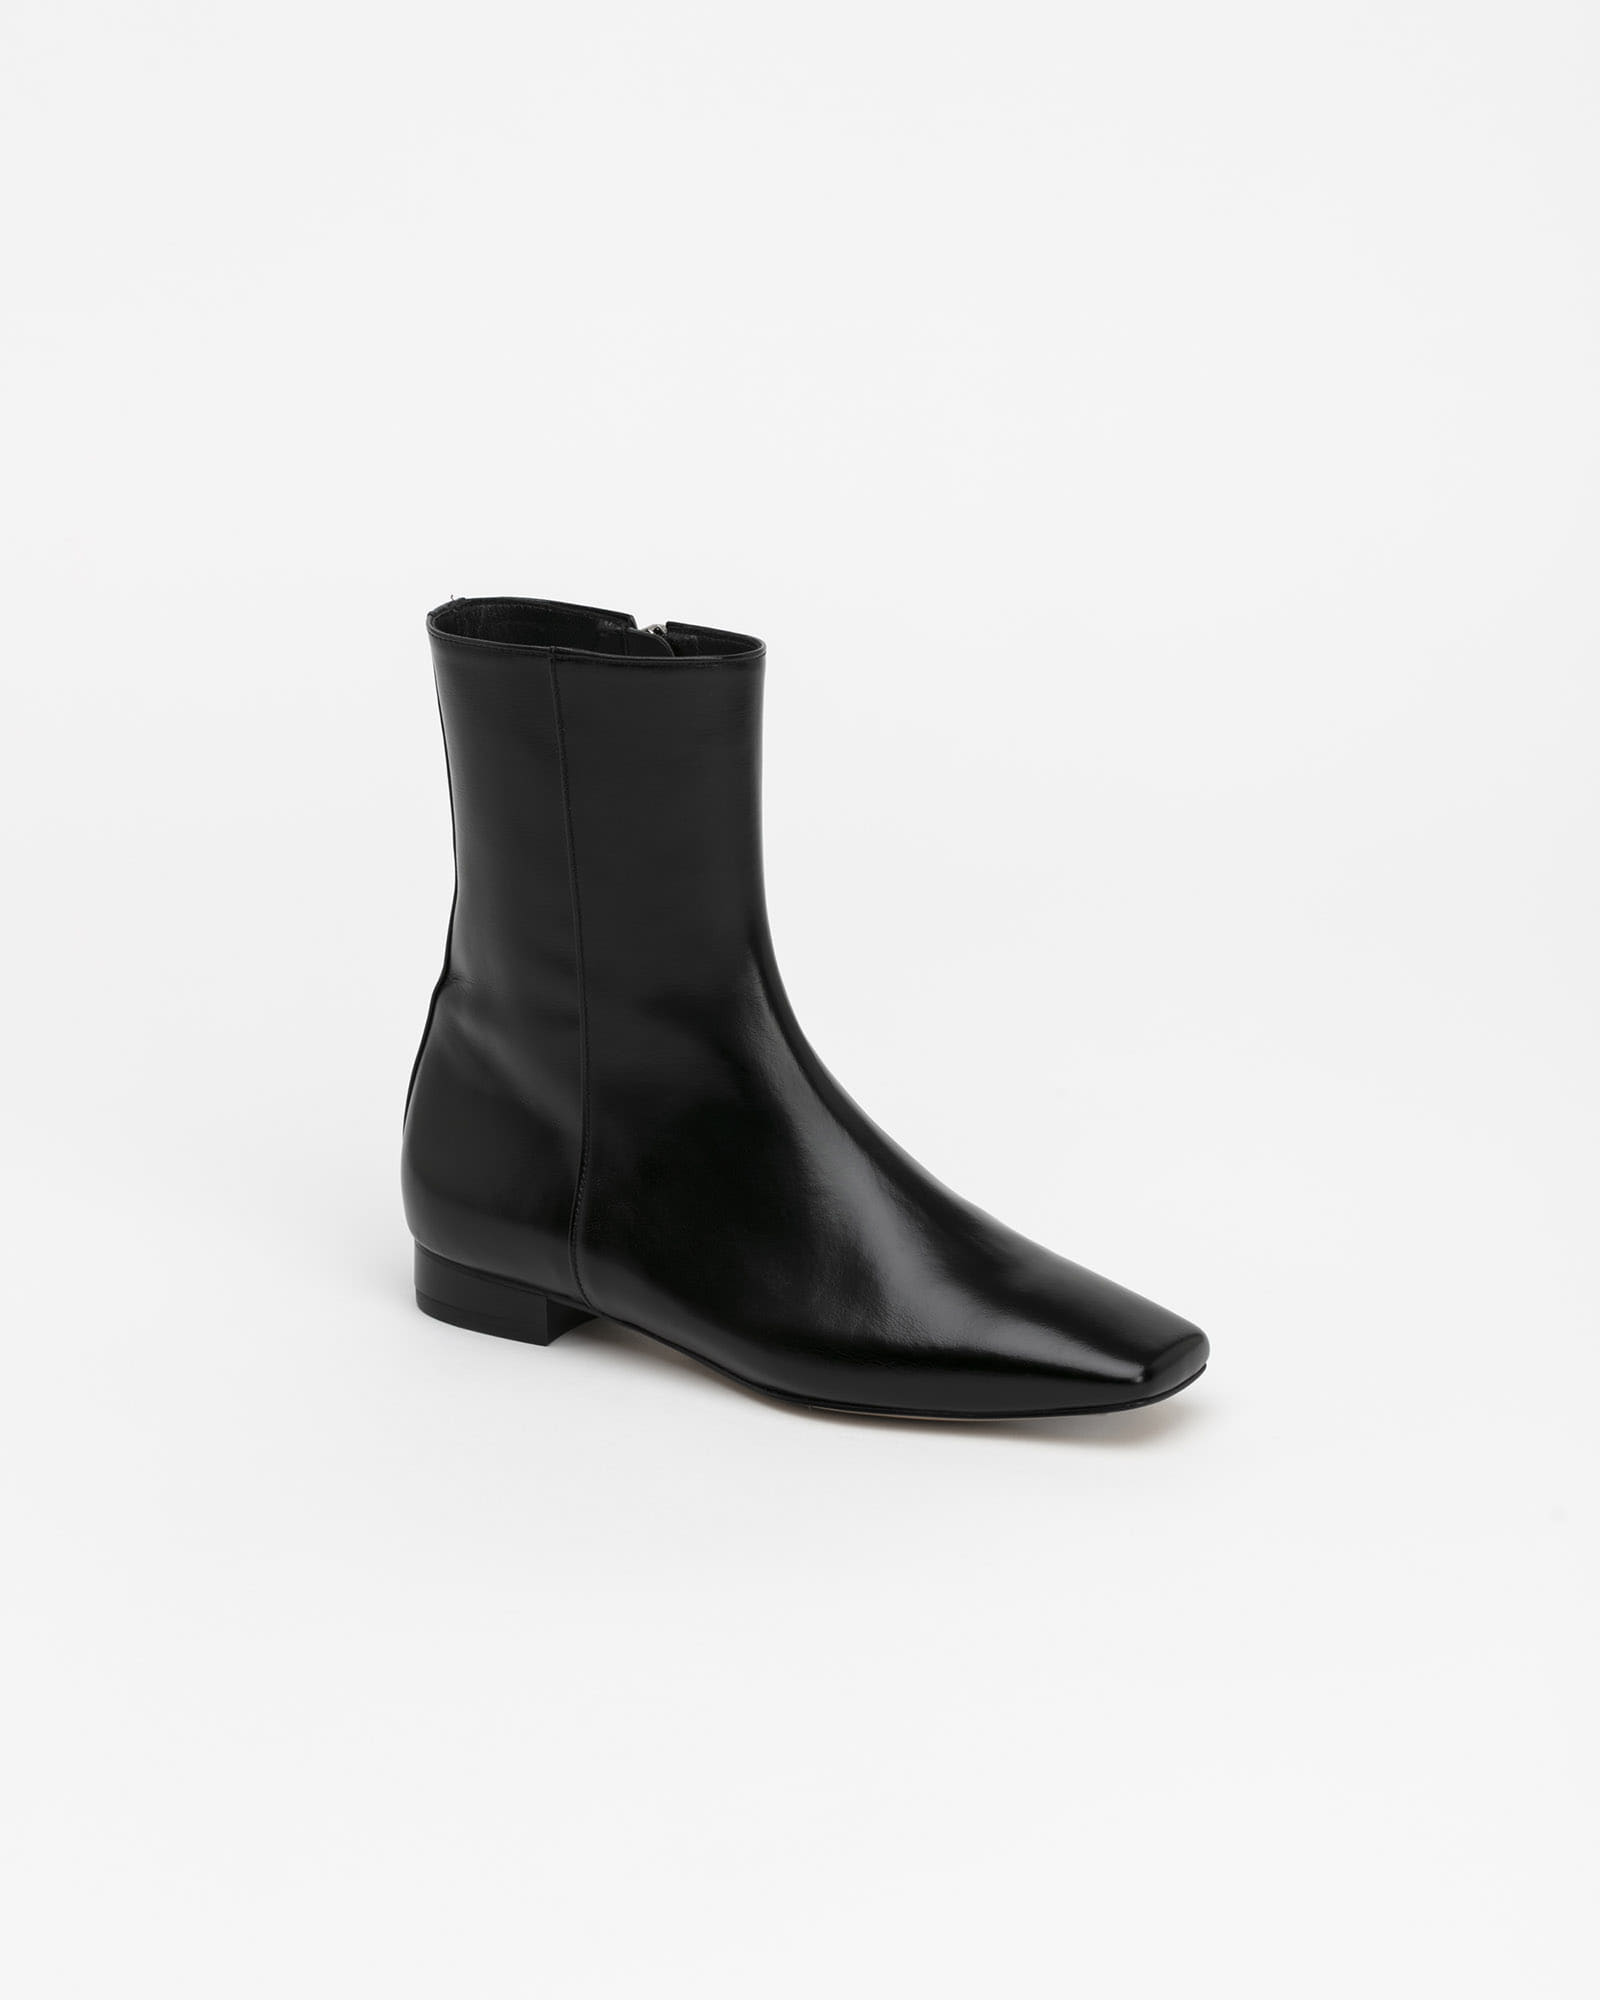 Sologram Flat Boots in Textured Black